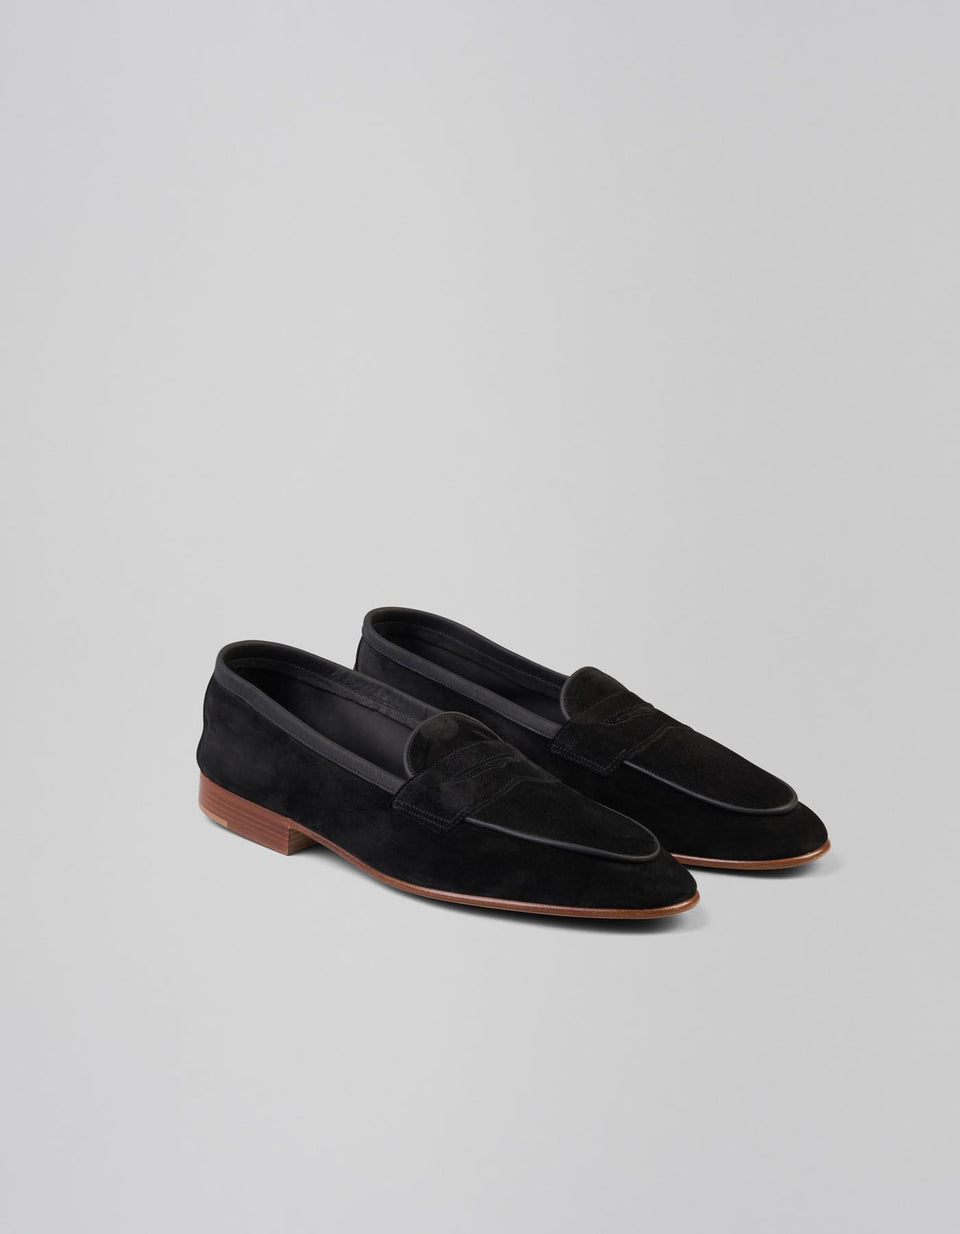 Polperro | Unlined | Suede | Black